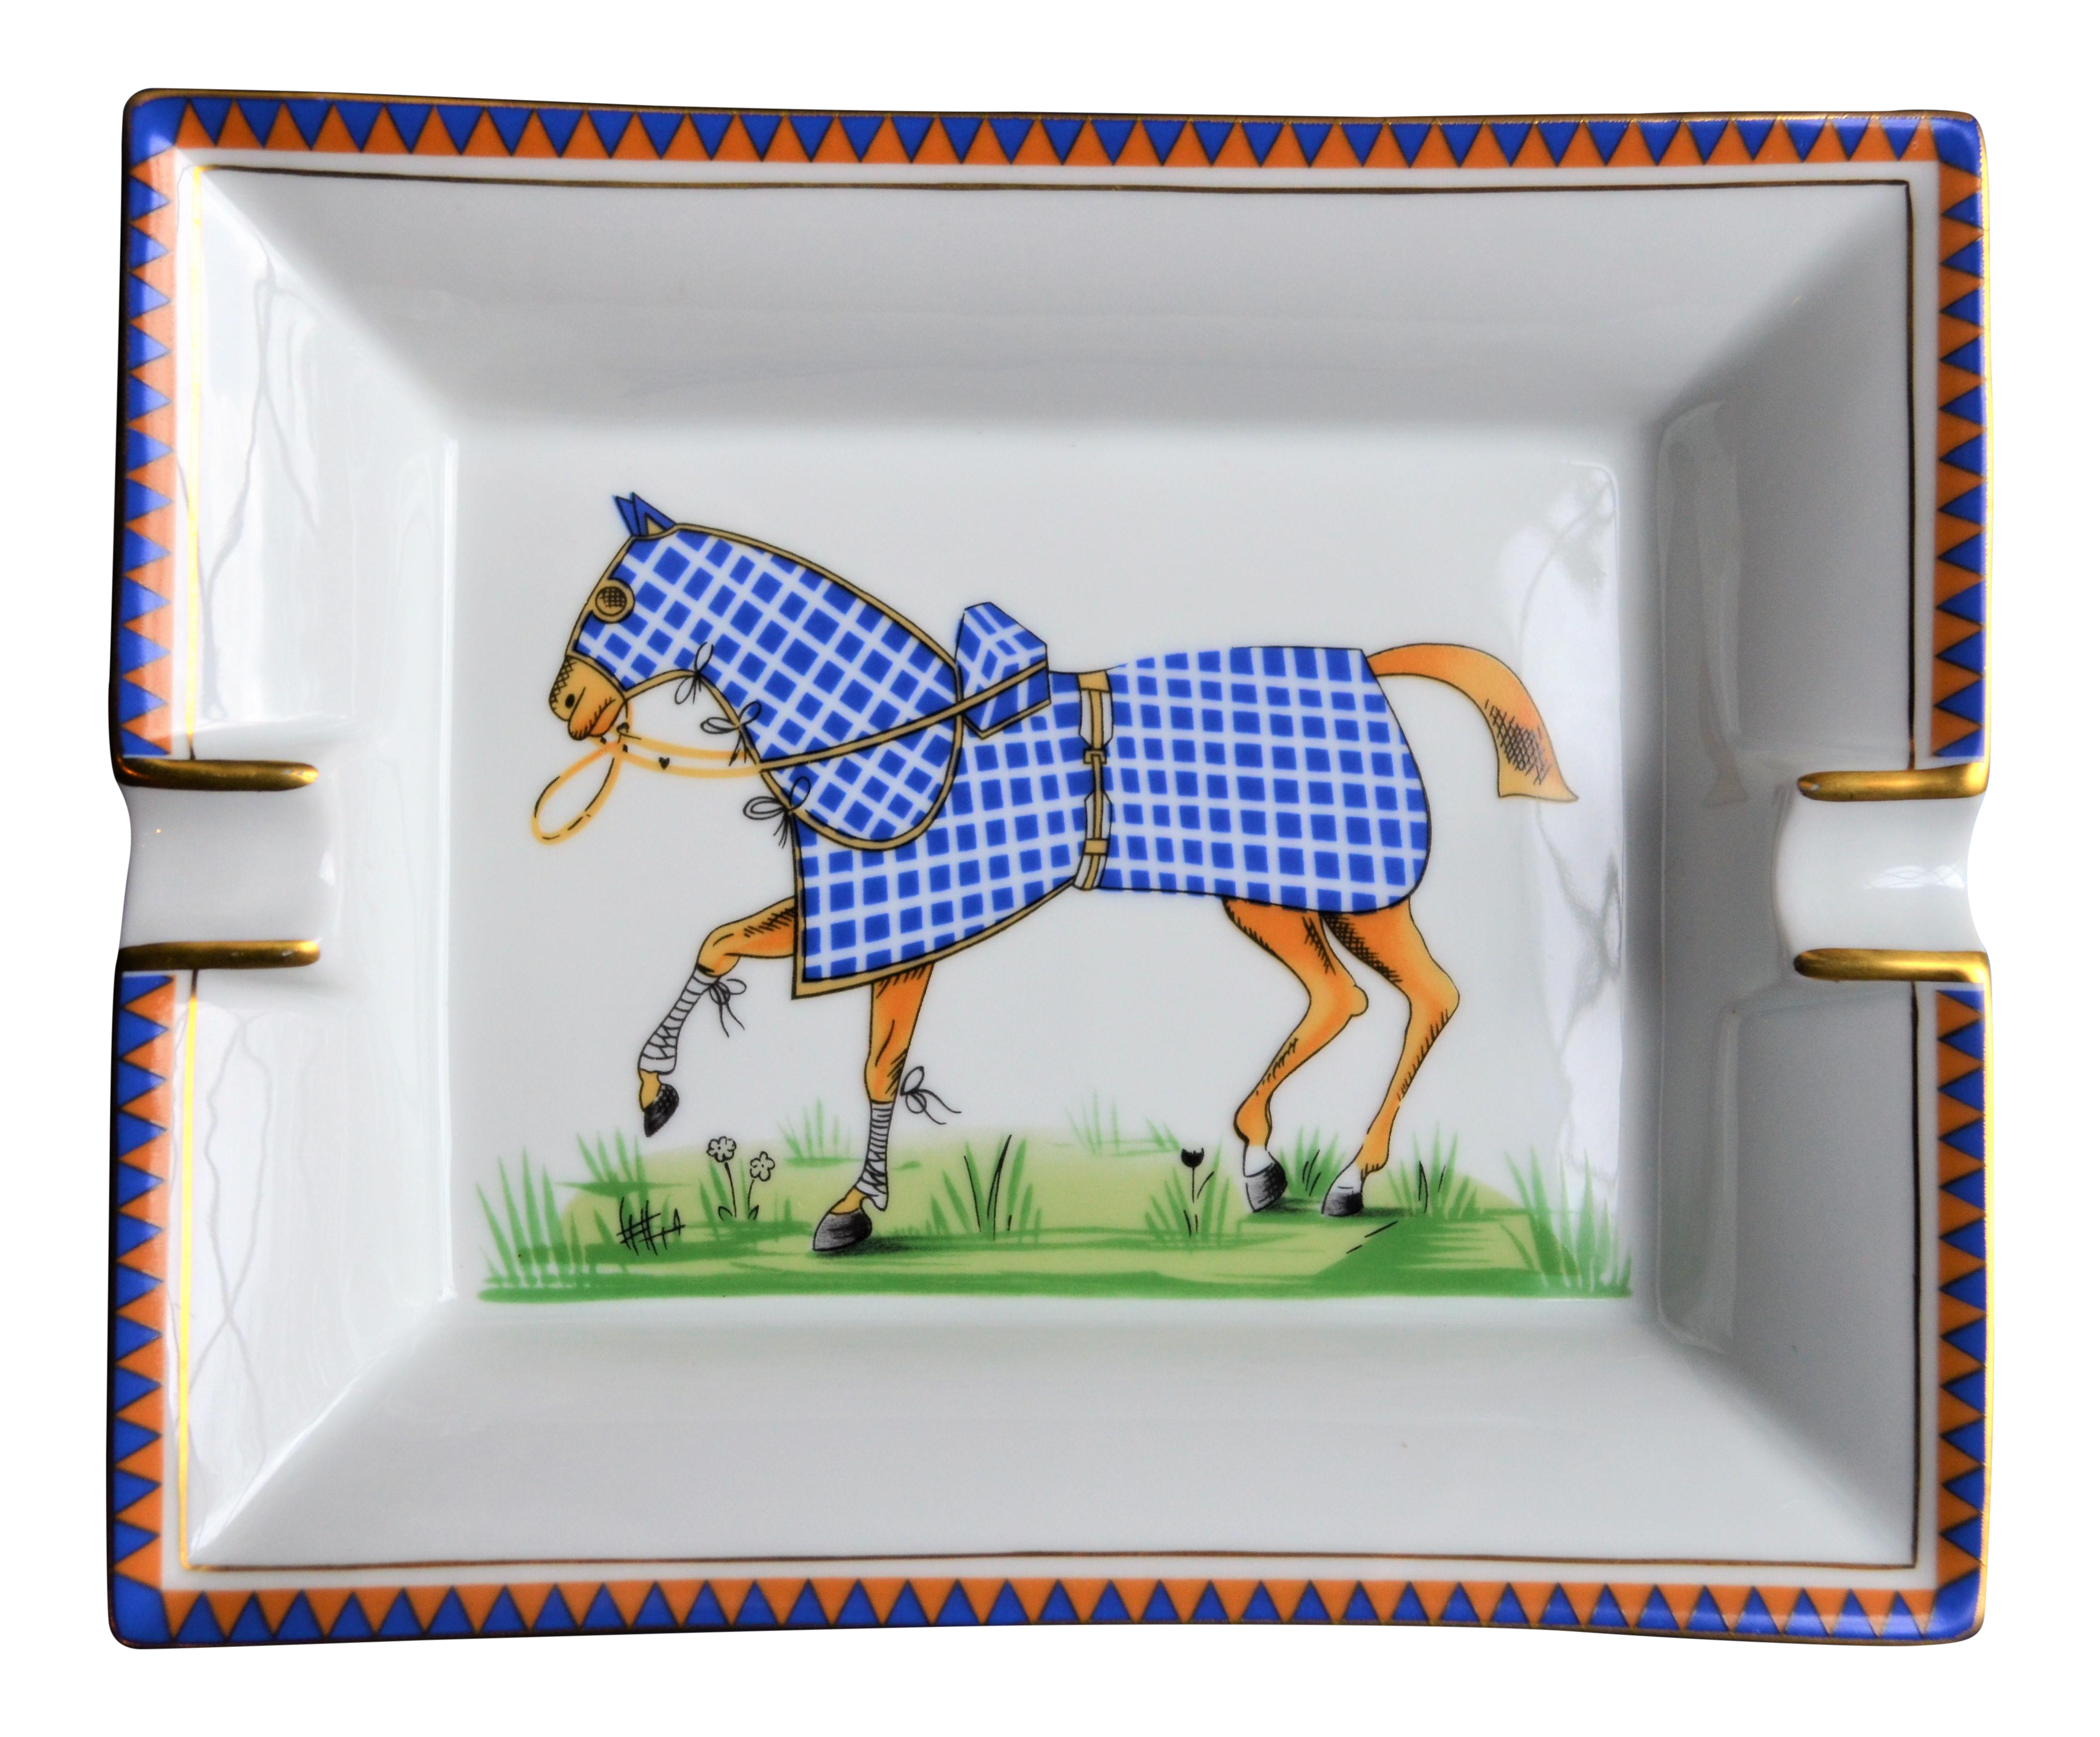 Hermes porcelain equestrian ashtray numbered chairish jeuxipadfo Gallery